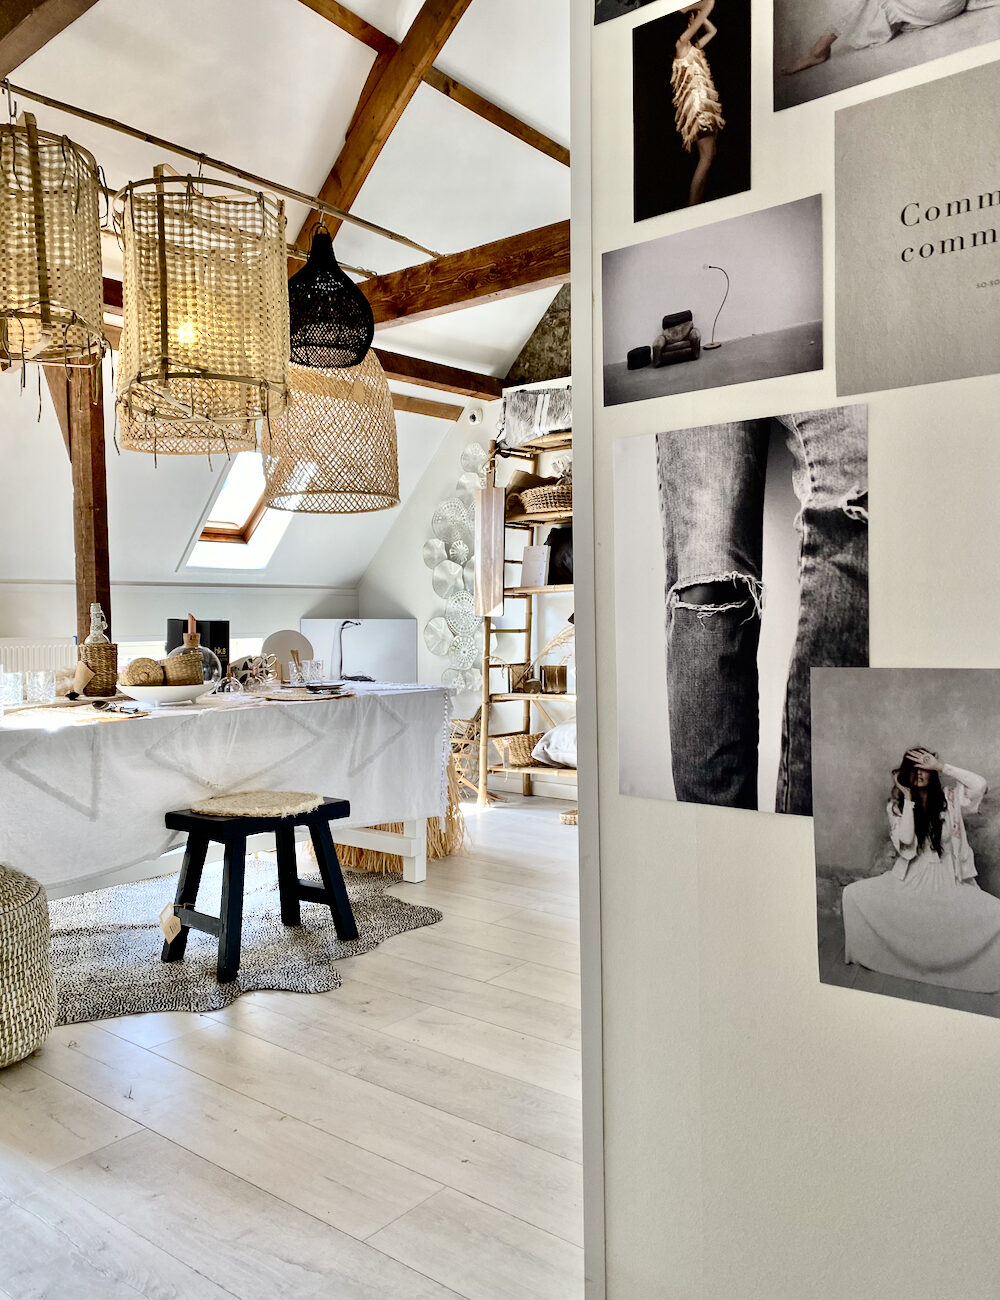 Conceptstore in Ouddorp